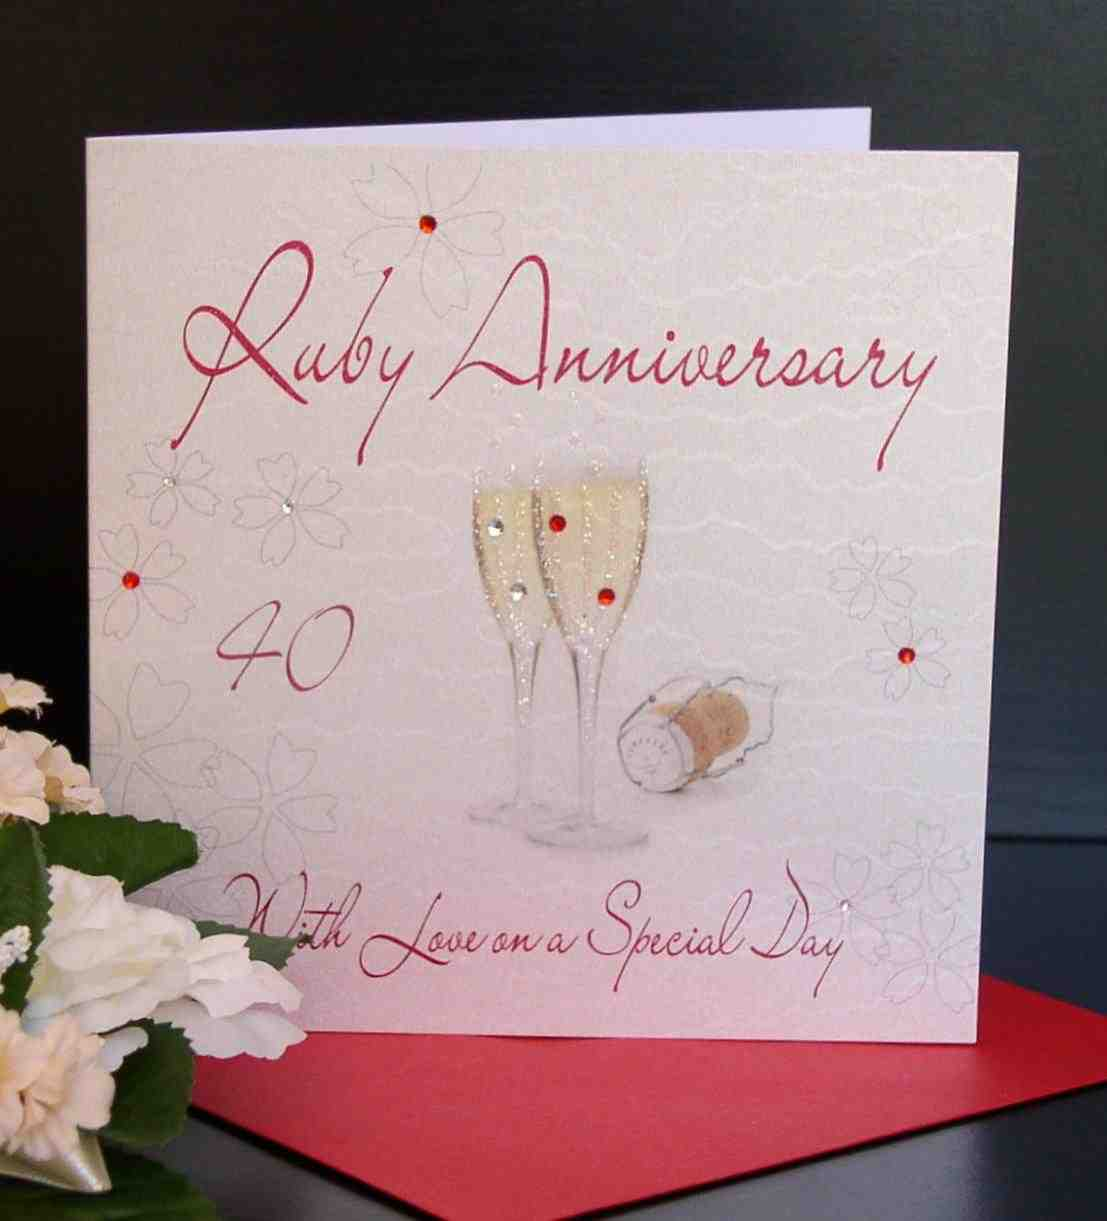 Wedding Anniversary Gifts For Parents 40 Years : 40Th Wedding Anniversary Gifts For ParentsWedding and Bridal ...